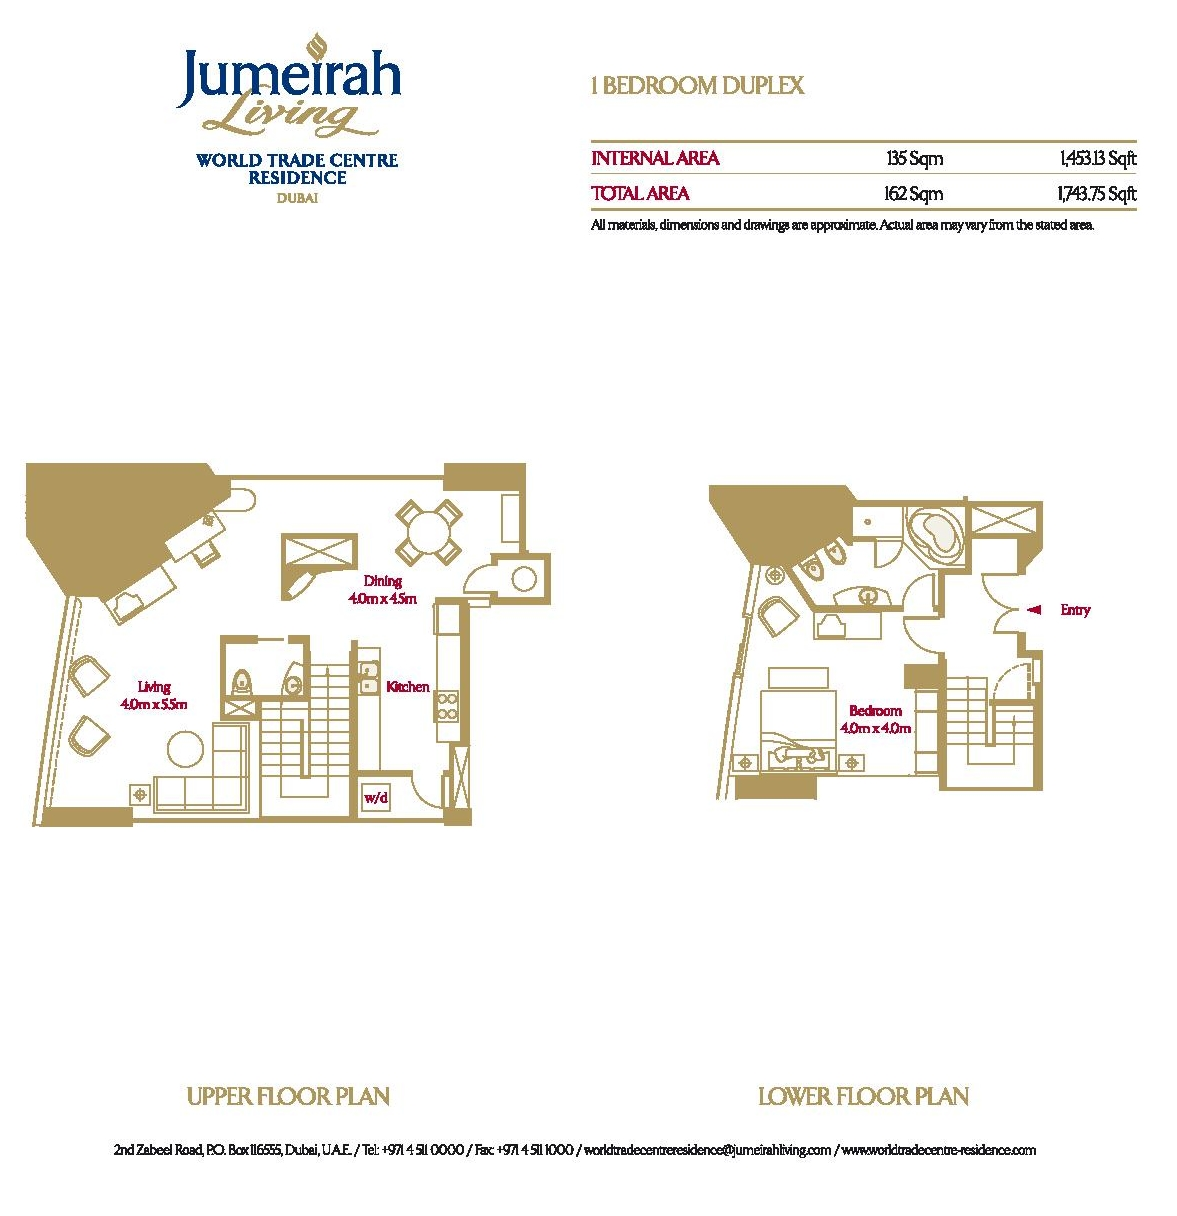 Fabulous 1 Bedroom Duplex Floor Plans 1177 x 1216 · 357 kB · jpeg